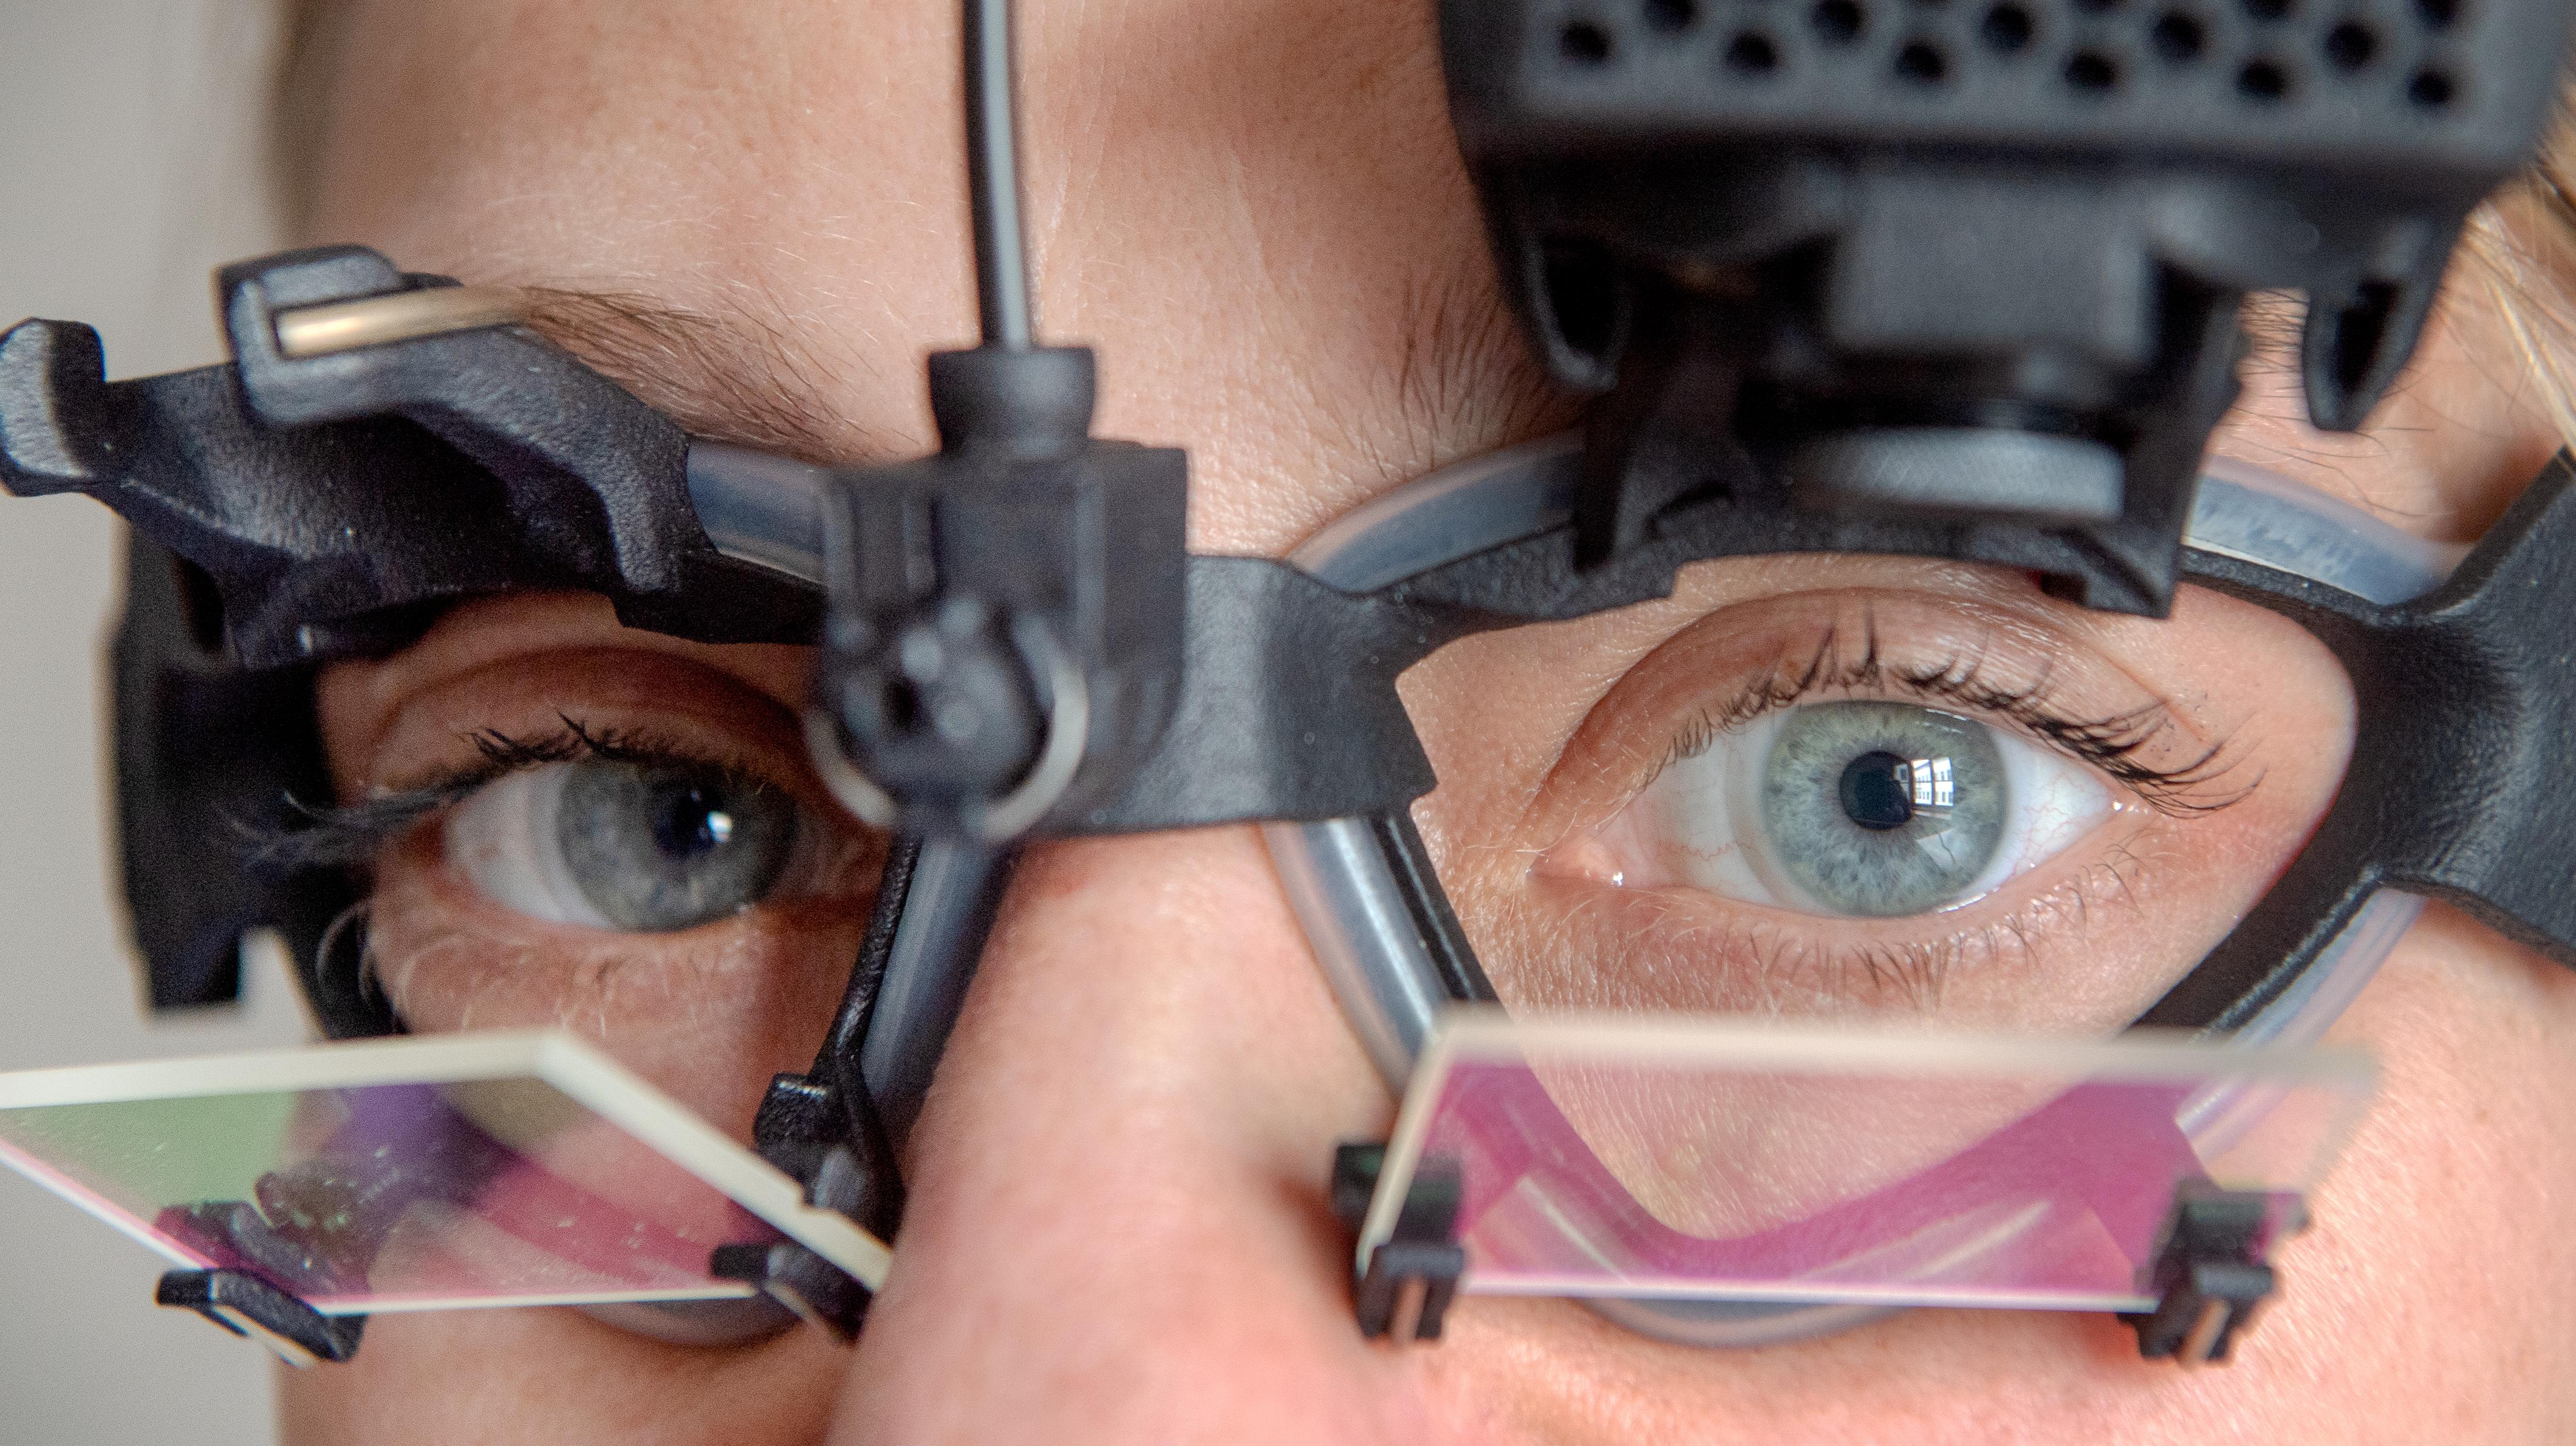 With the help of special glasses, the scientists are able to record the head and eye movements of the participants.